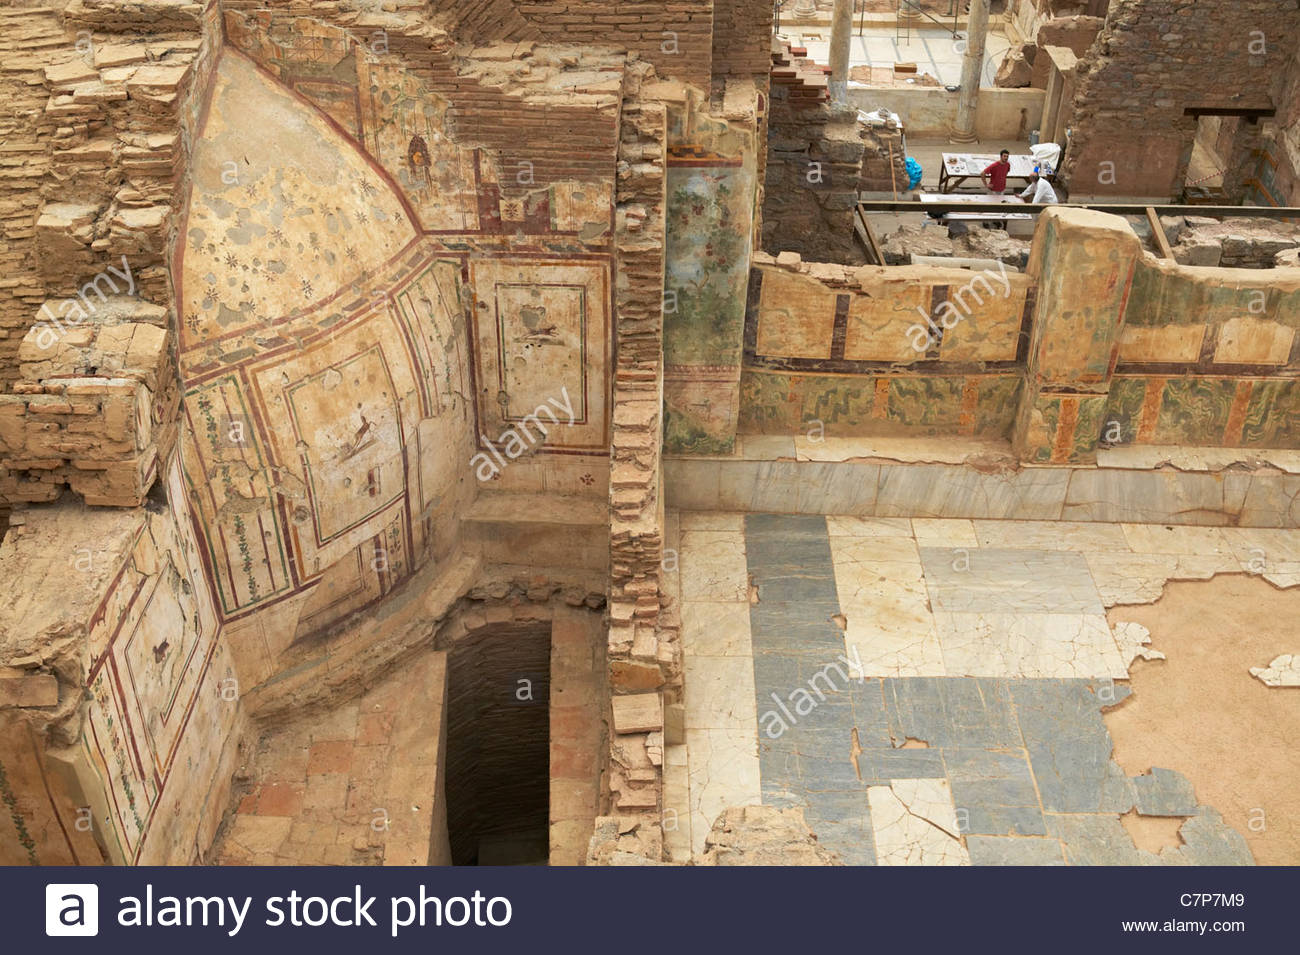 Tomb of Amyntas Fethiye, Wall paintings in Terrace house 2 getting restorated in the ...